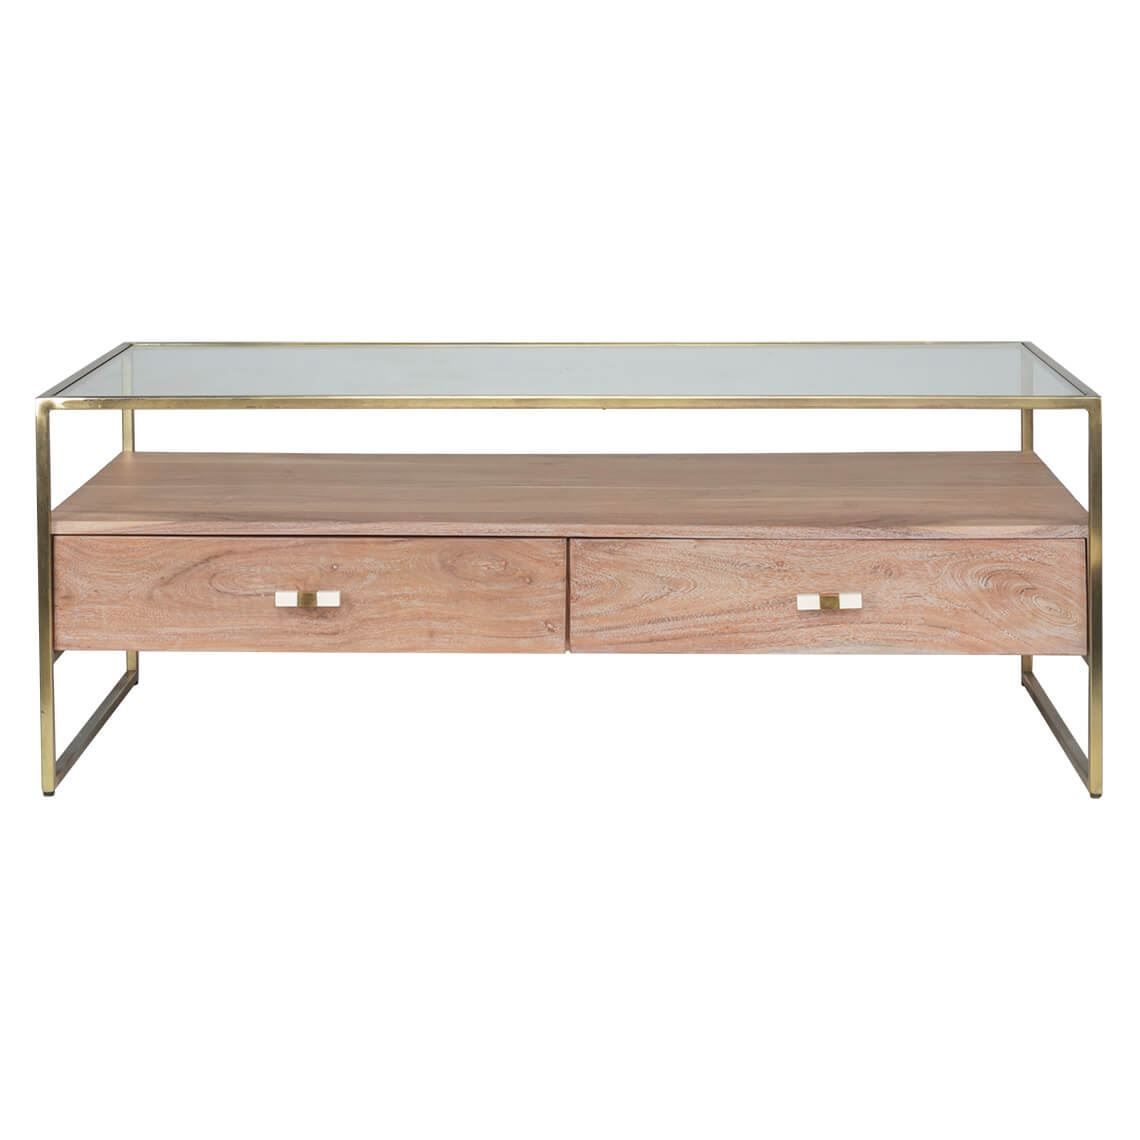 Phenomenal Artemis 2 Drawer Coffee Table Washed Natural Furniture Machost Co Dining Chair Design Ideas Machostcouk